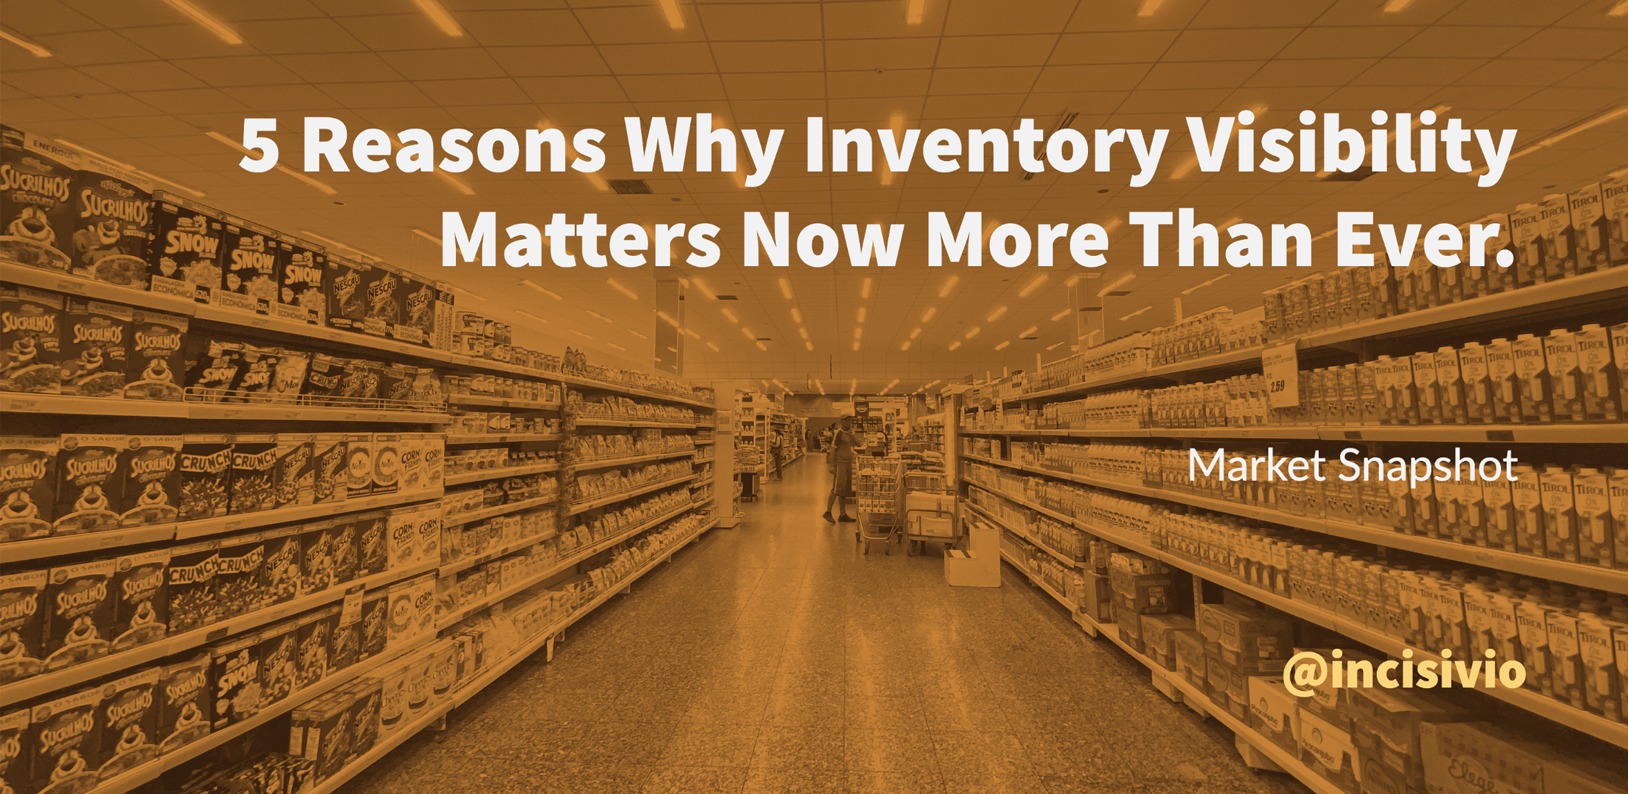 5 Reasons Why Inventory Visibility Matters Now More Than Ever.